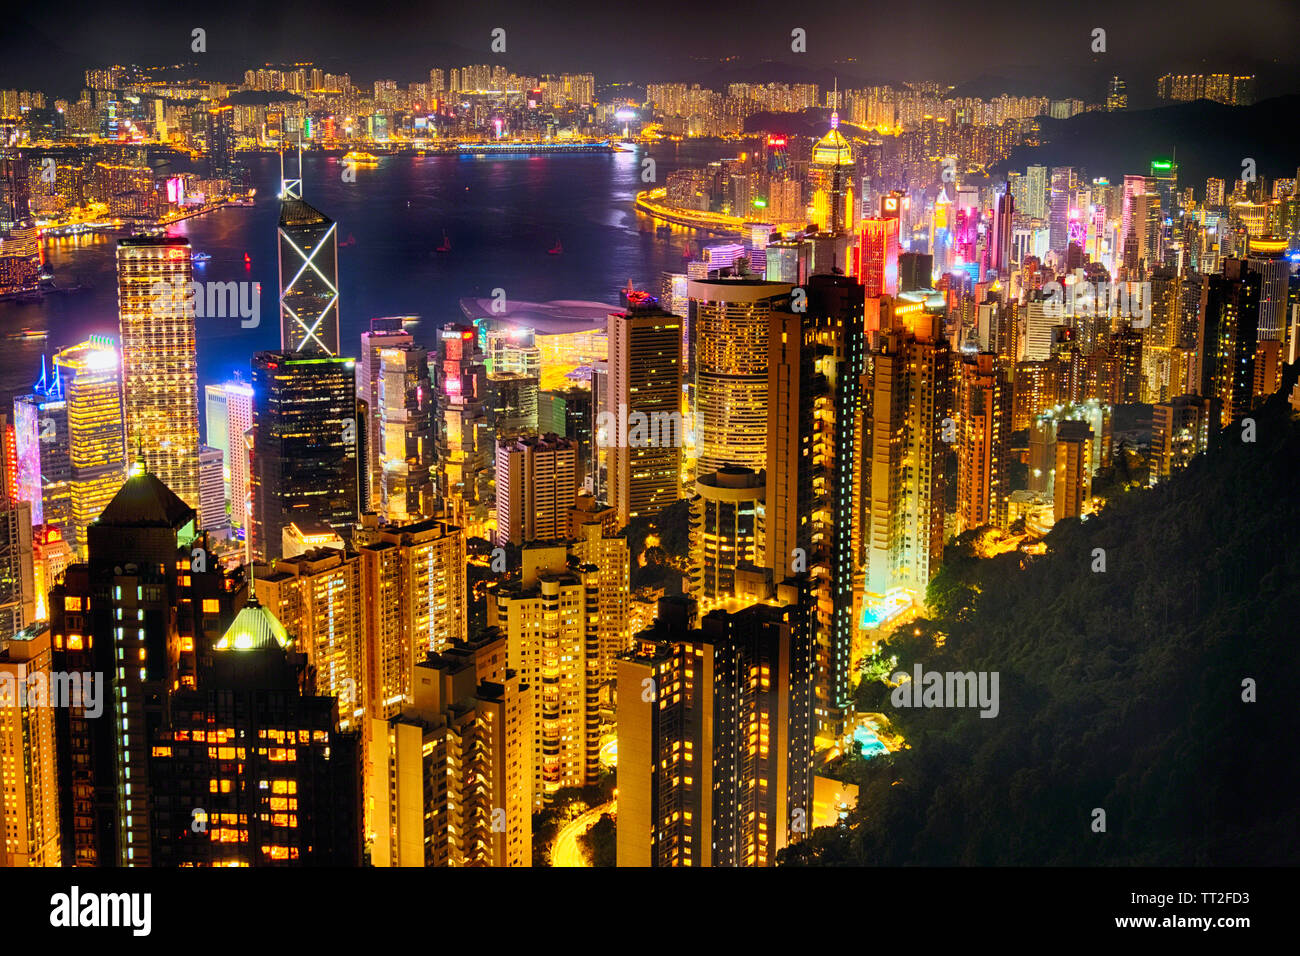 High Angle View of Hong KIong Nighjt Skyline from the Victoria Peak Stock Photo